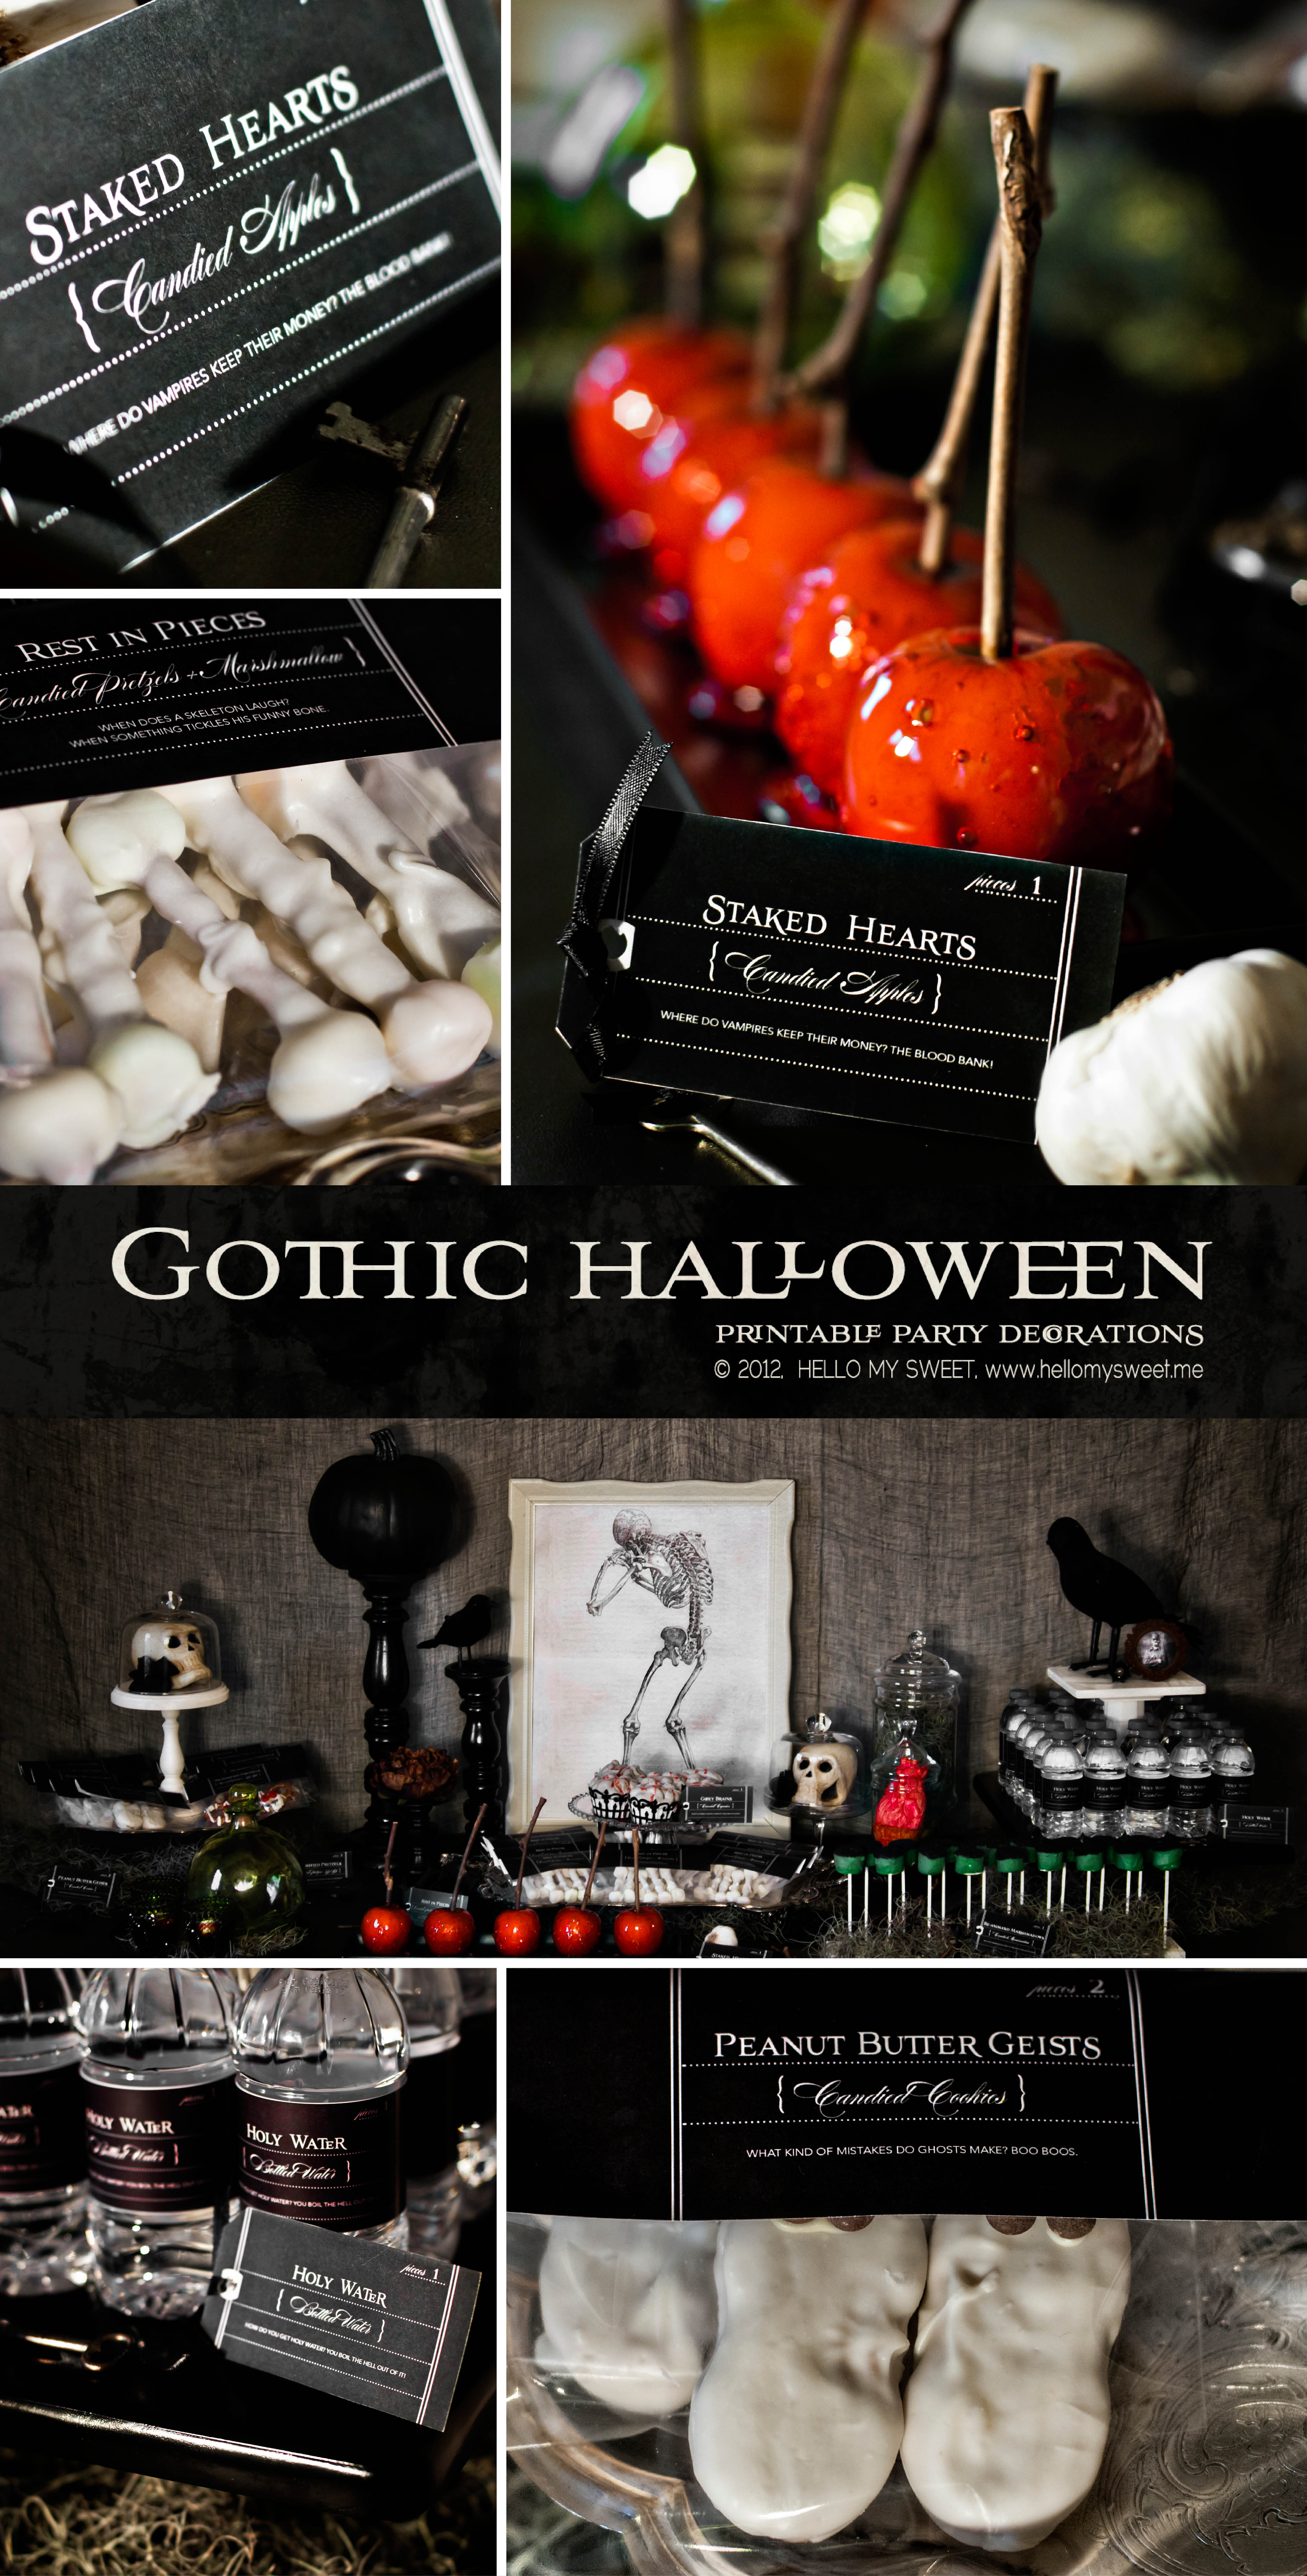 My American Express >> Spooky Halloween Party Ideas - Handmade Decor - The Flair ExchangeThe Flair Exchange®